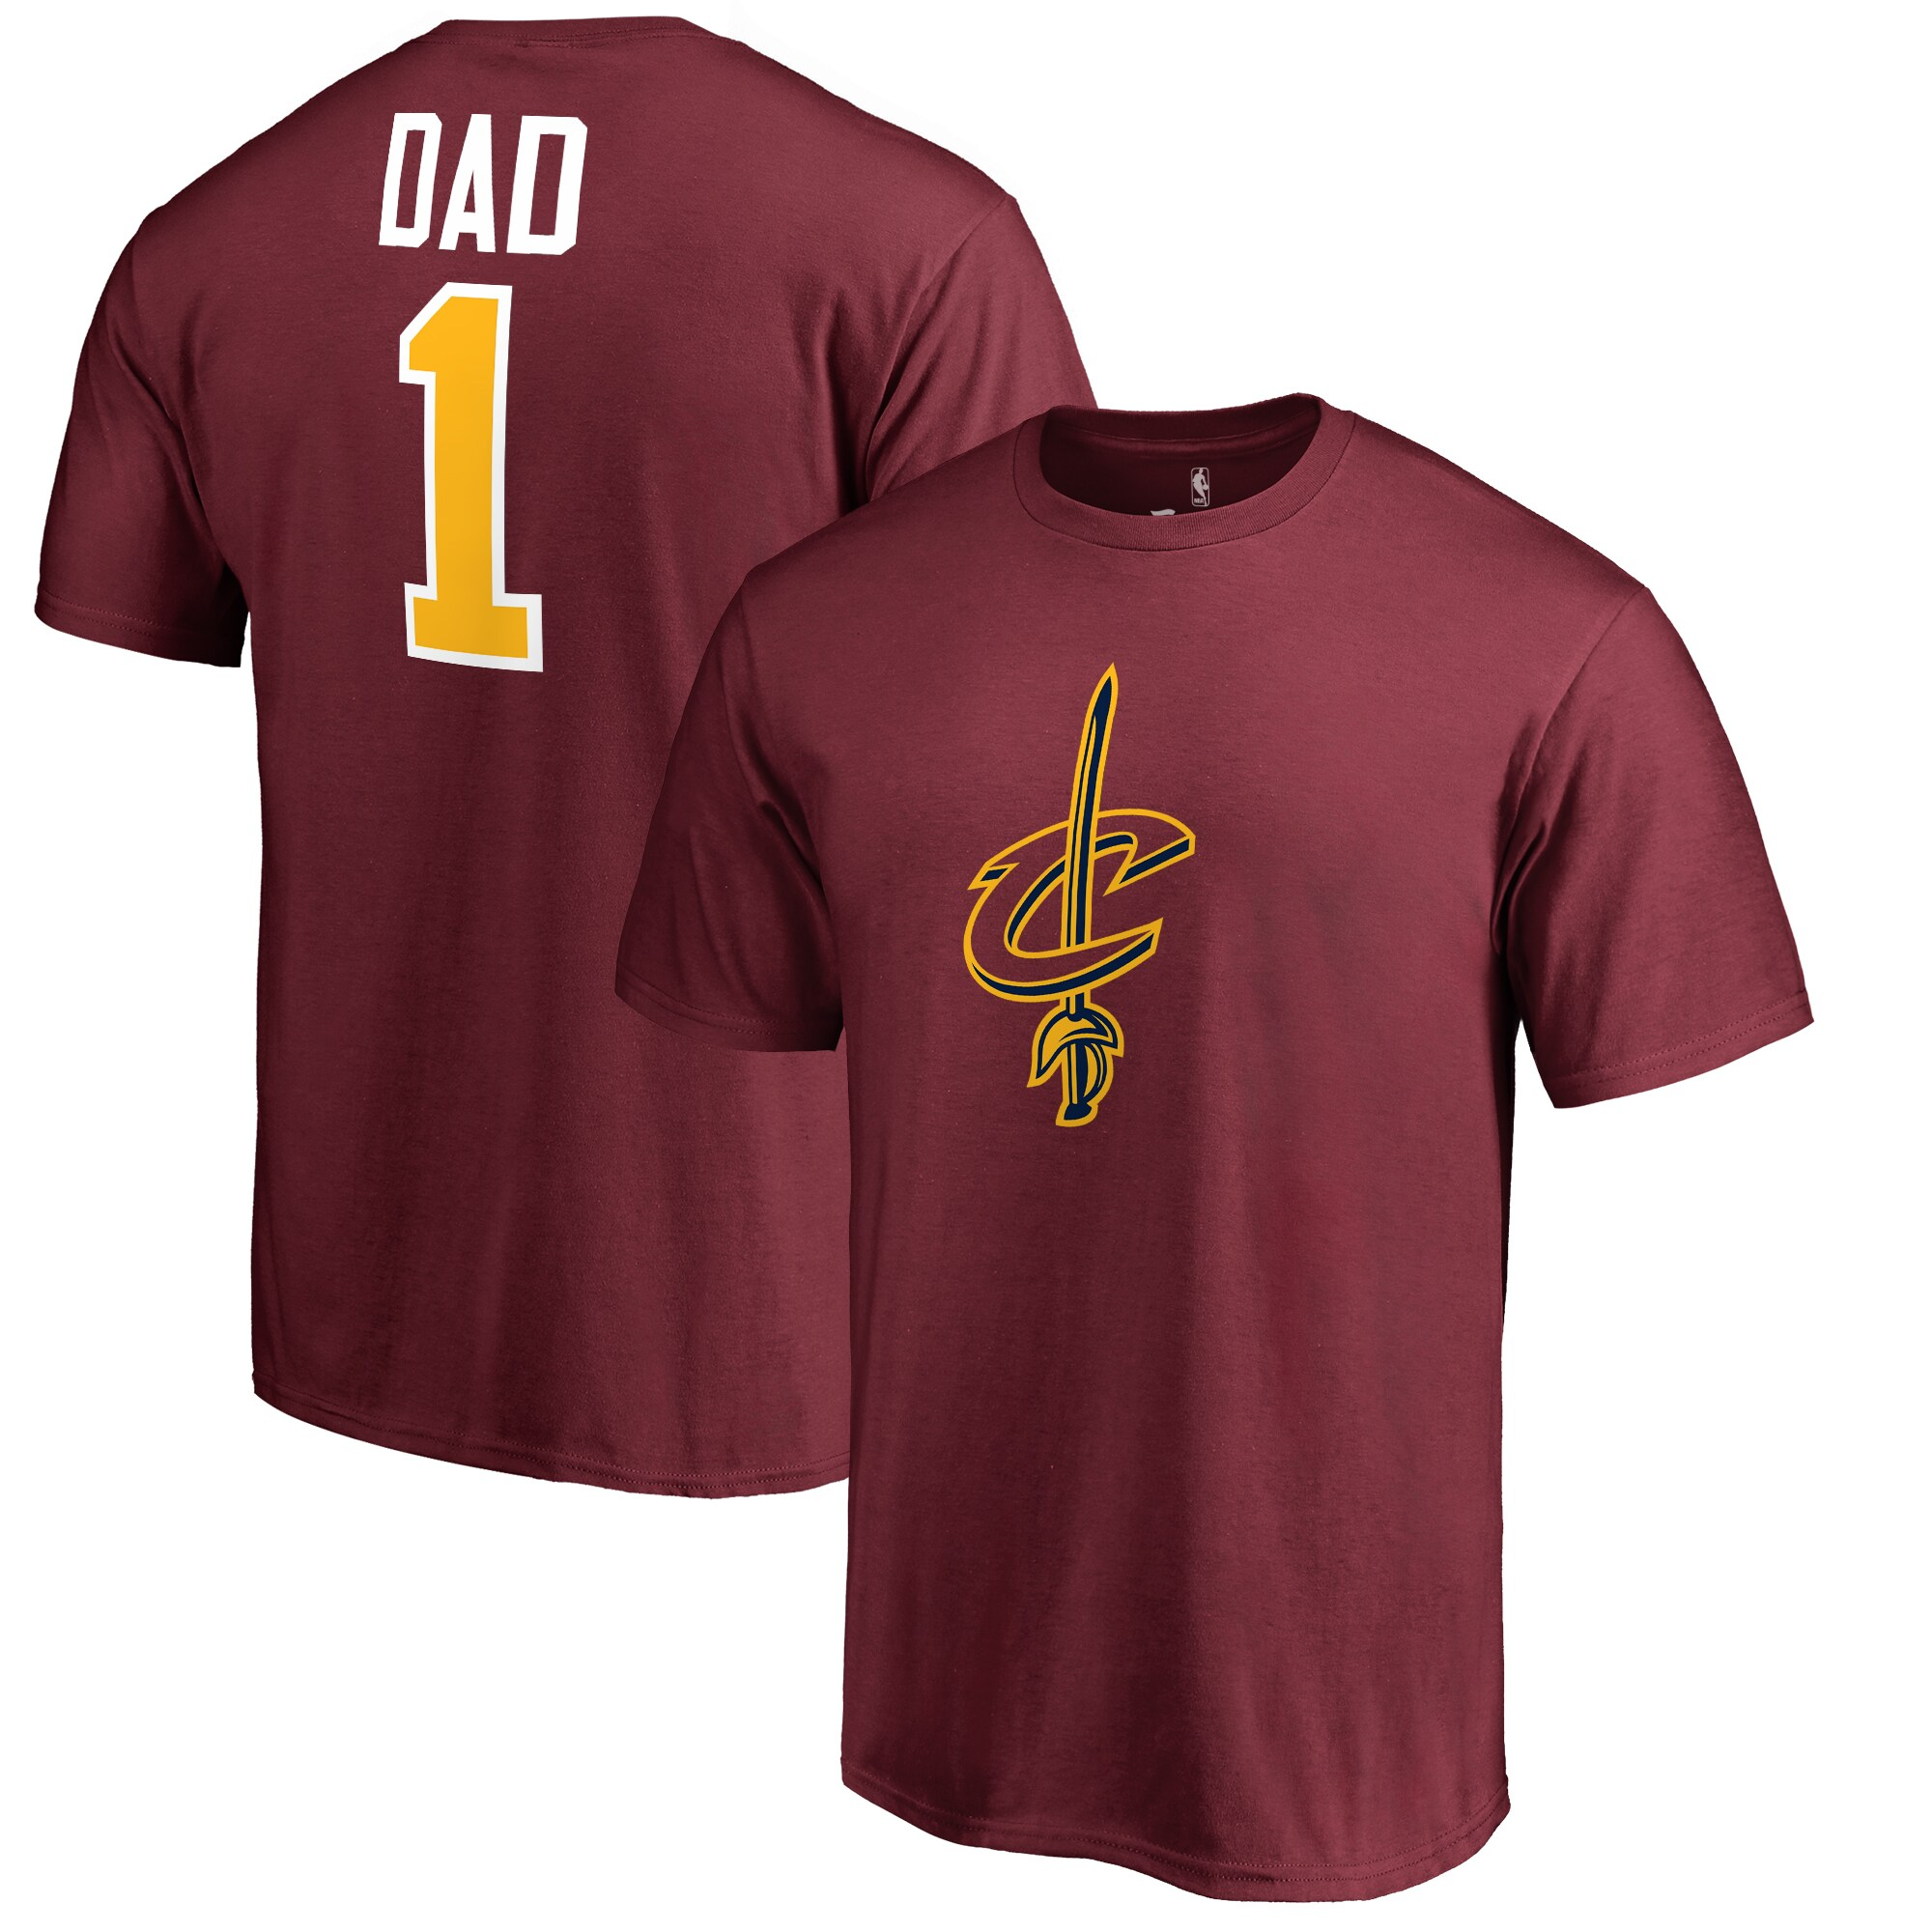 Cleveland Cavaliers #1 Dad T-Shirt - Wine